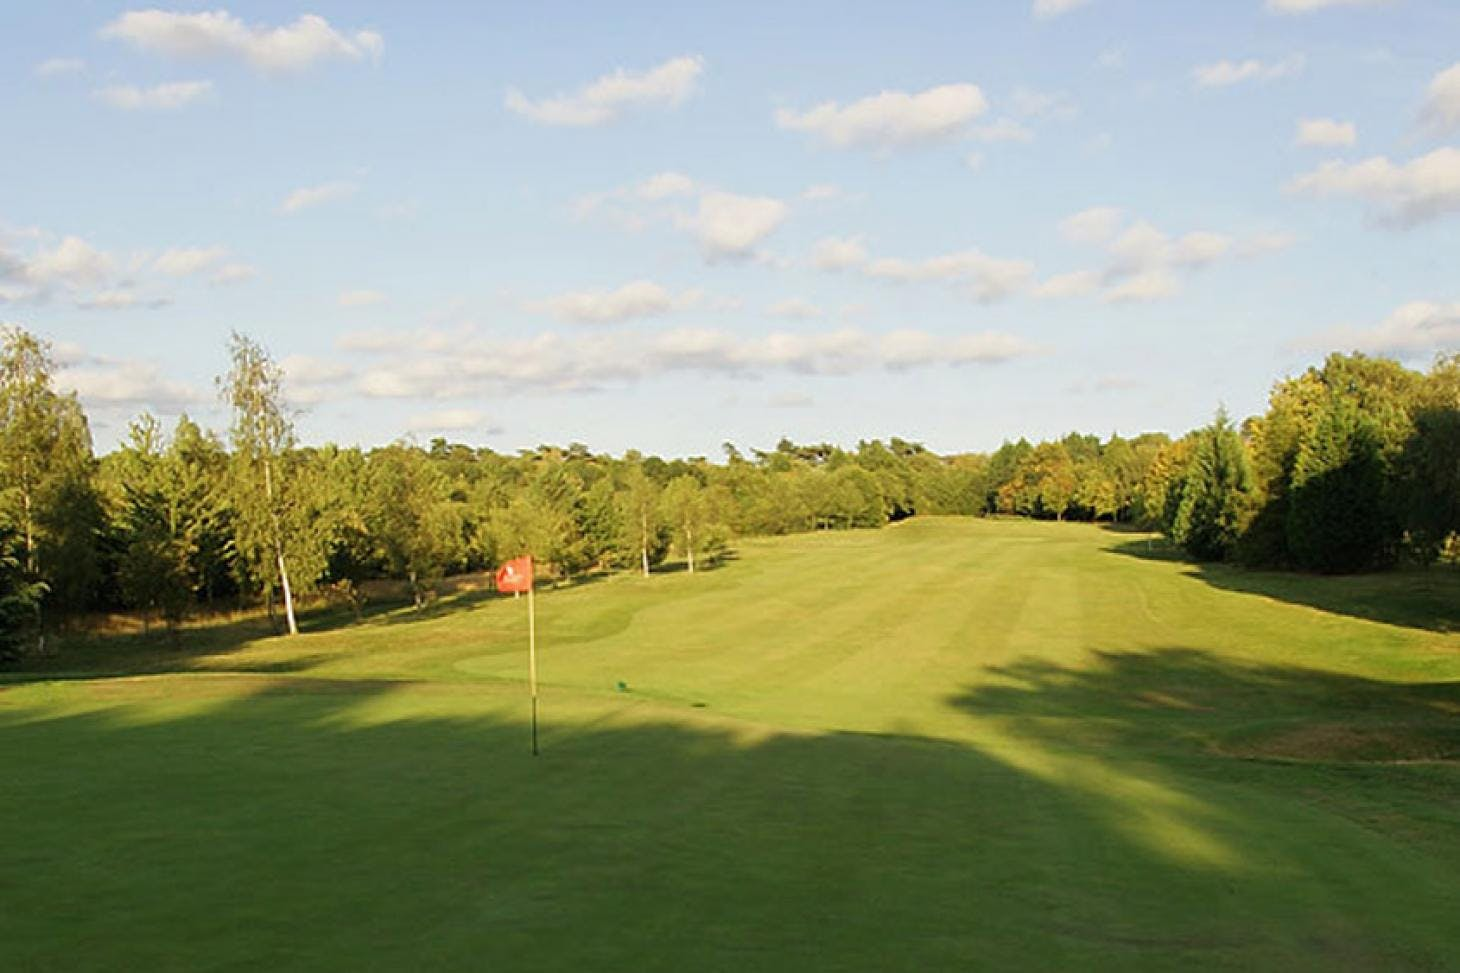 Woodcote Park Golf Club 18 hole golf course